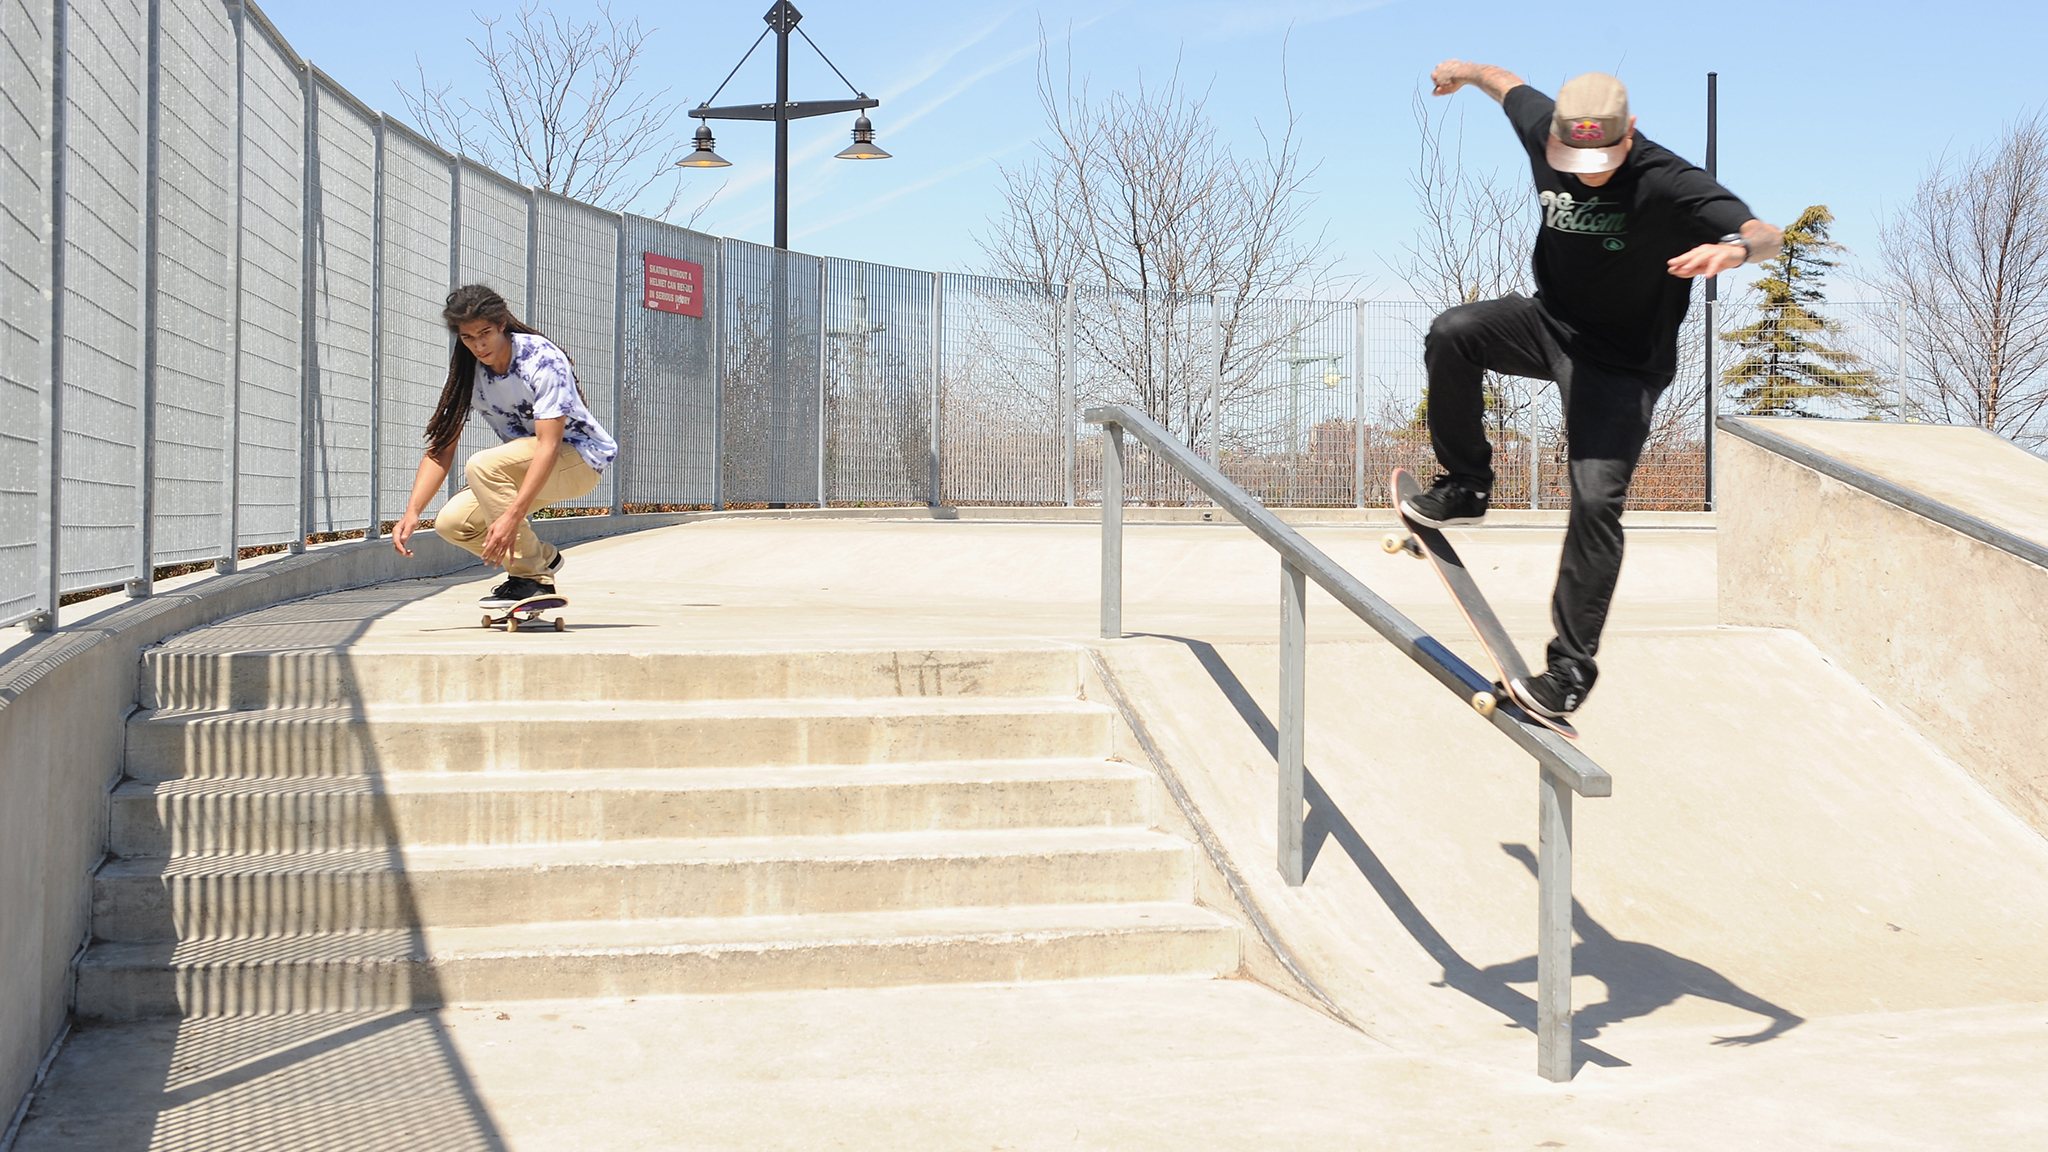 Sheckler gets in a line at the Chelsea Piers park in New York City.